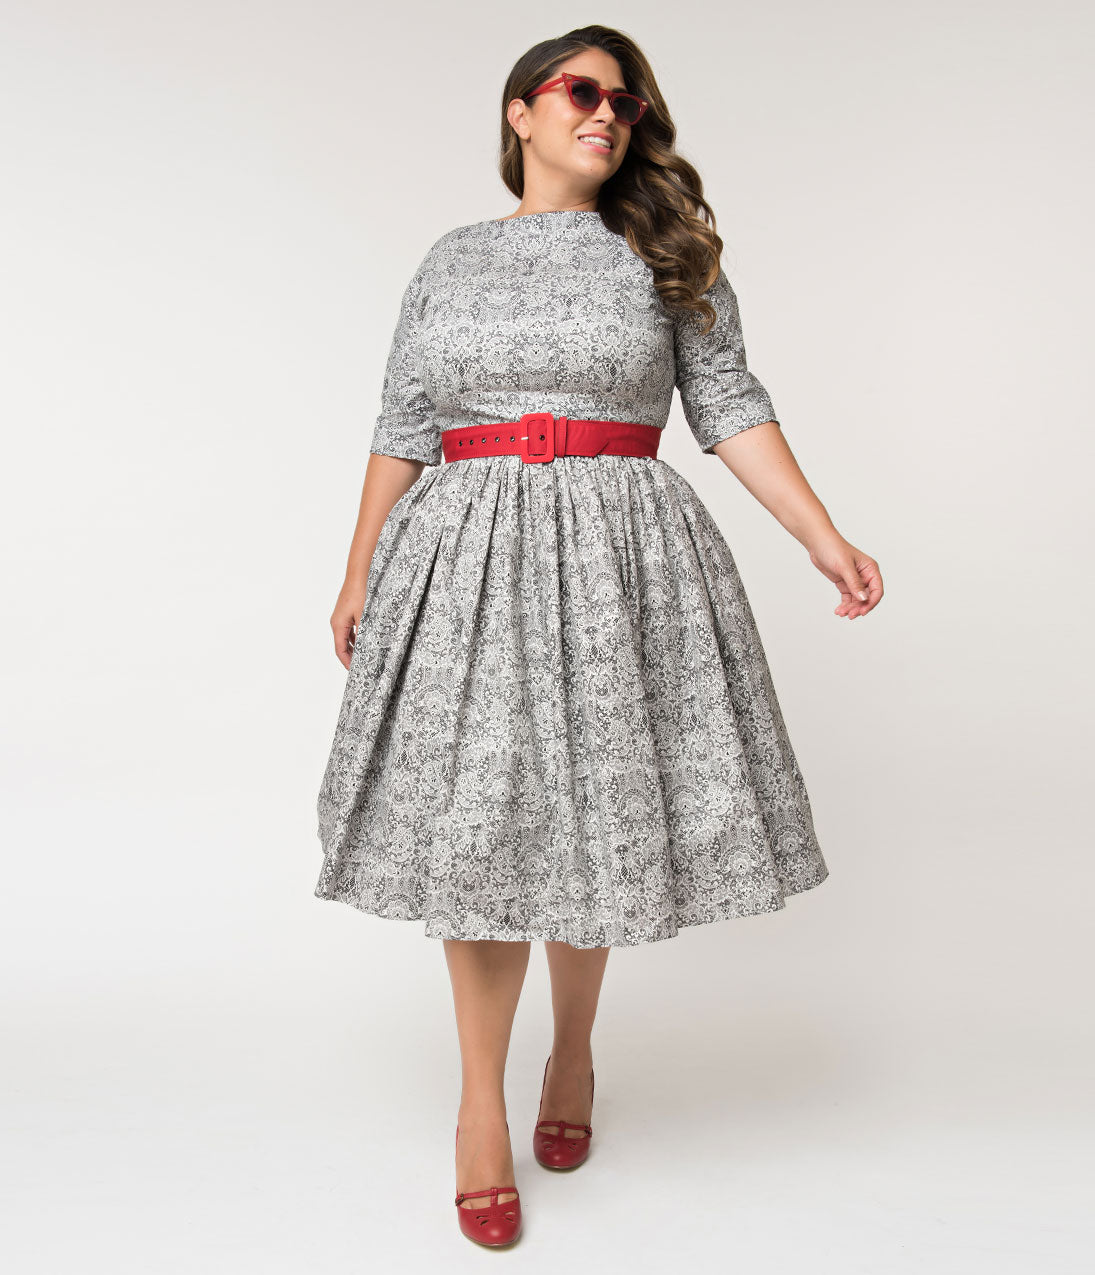 1950s Plus Size Dresses, Clothing and Costumes Unique Vintage Plus Size 1940S Style Black  White Lace Print Sleeved Sally Swing Dress $128.00 AT vintagedancer.com